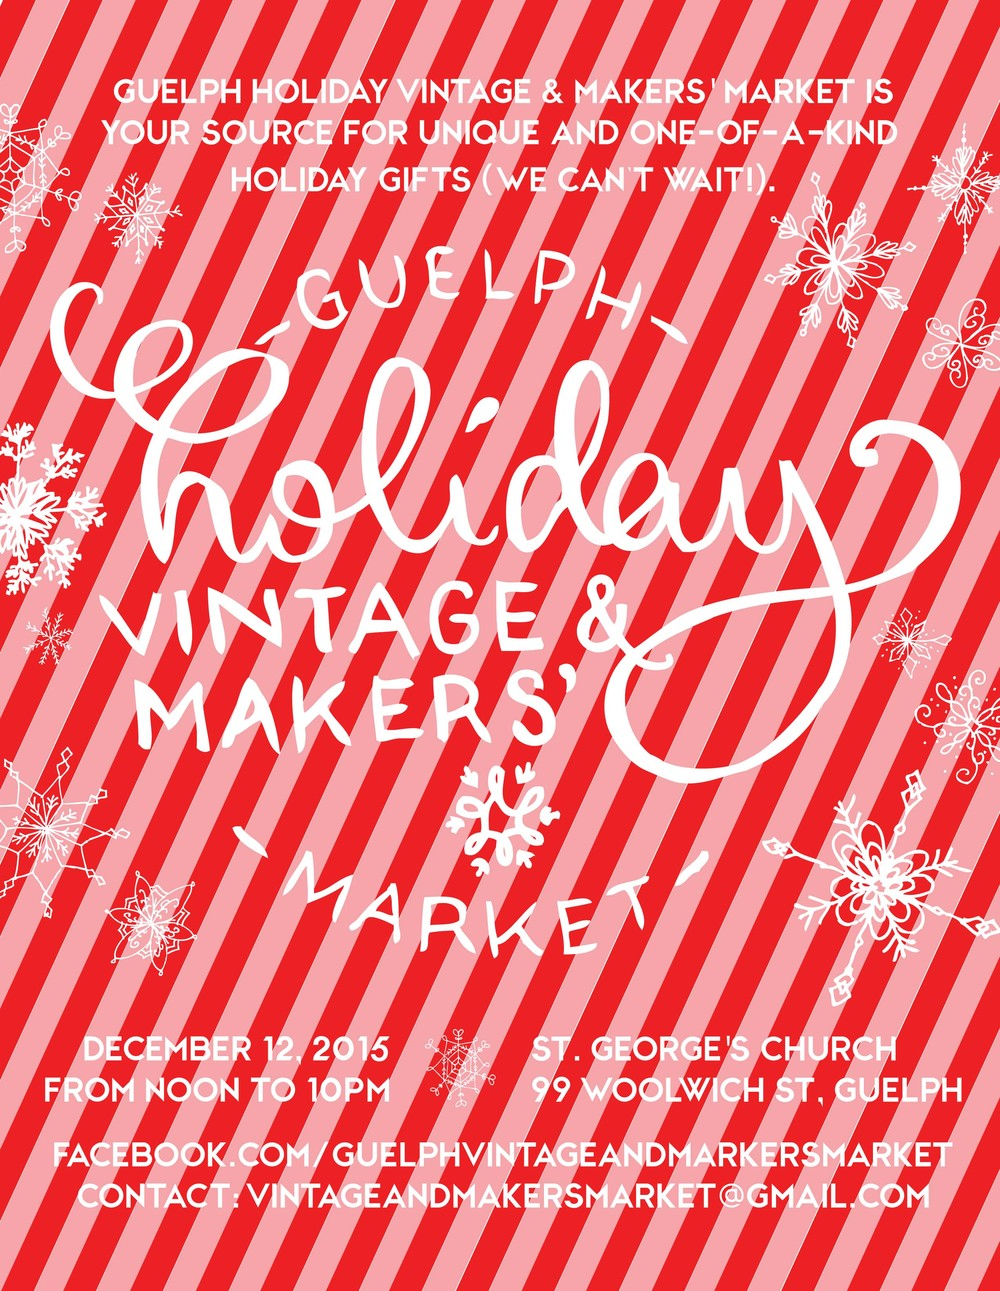 Guelph Holiday Vintage & Makers' Market